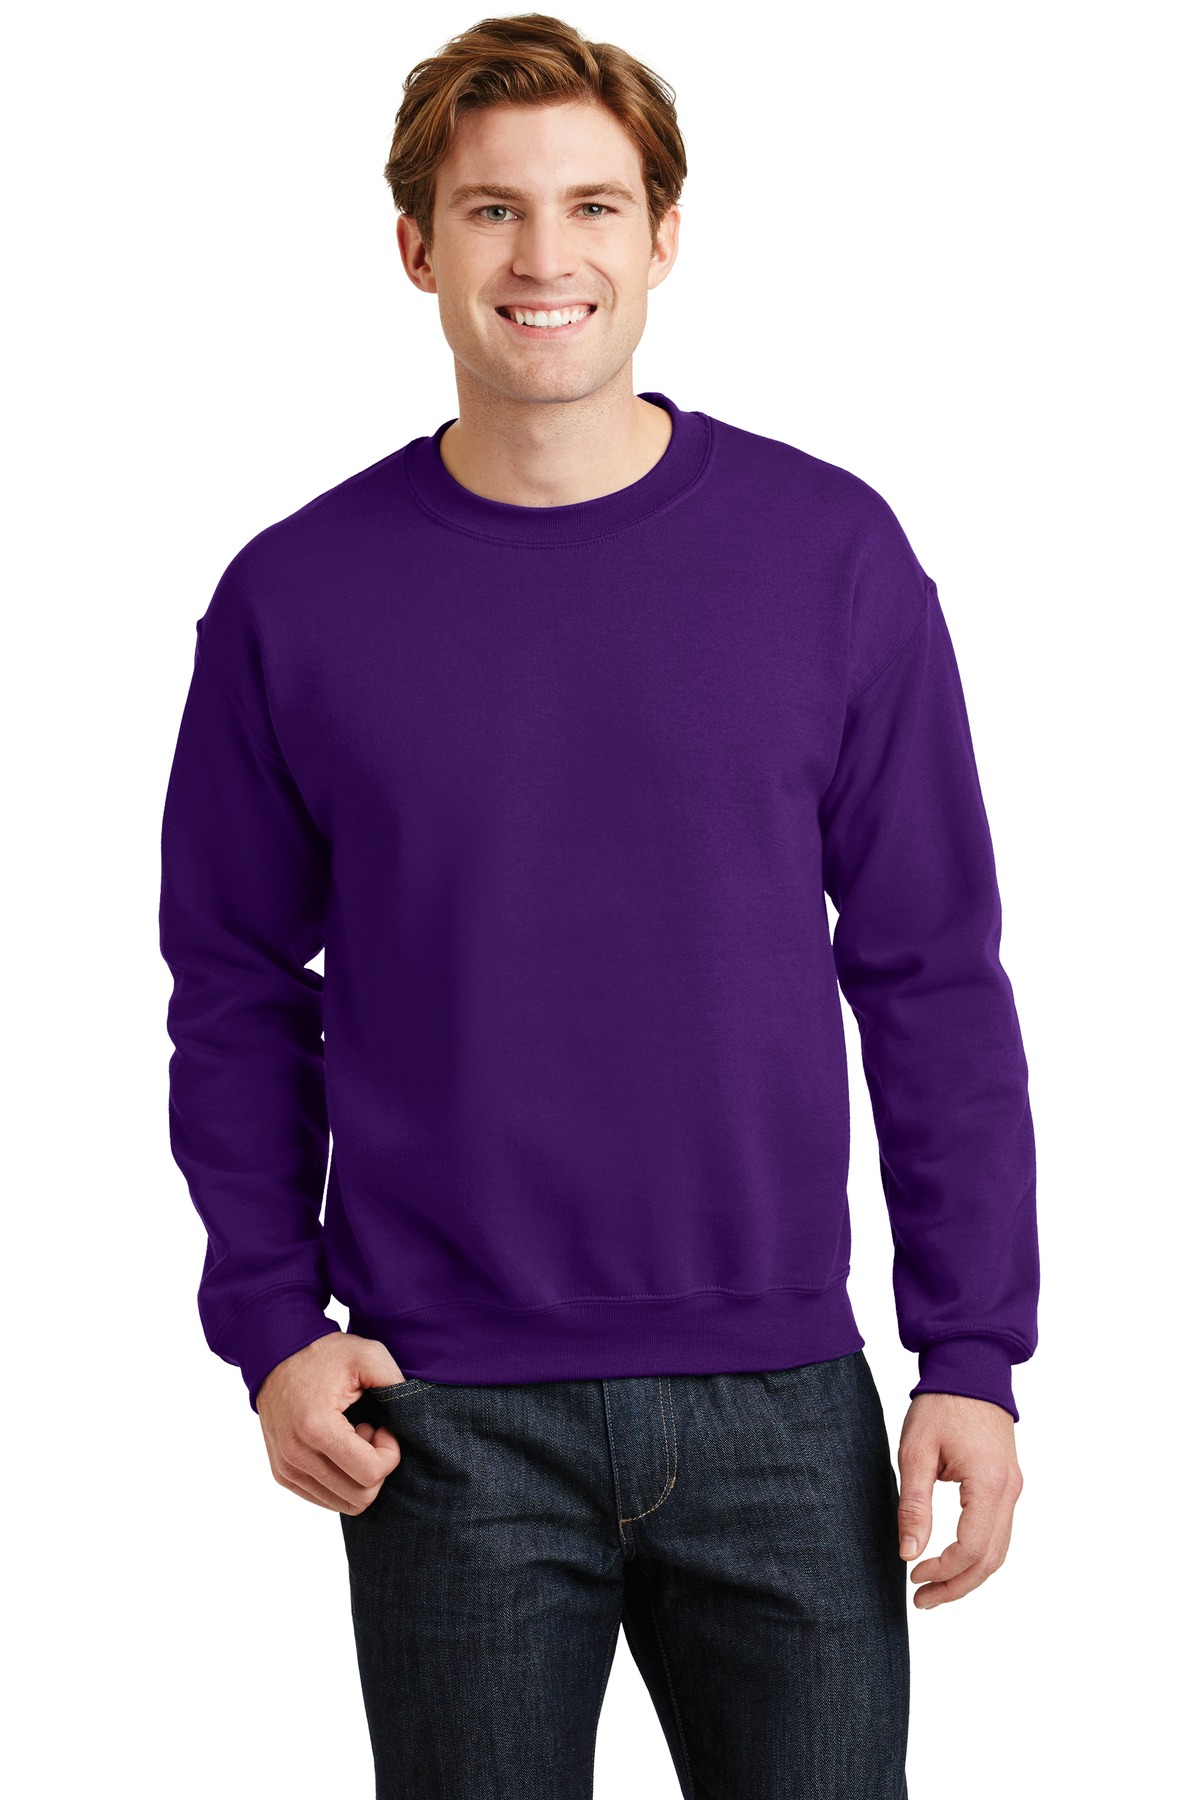 Gildan ®  - Heavy Blend™ Crewneck Sweatshirt.  18000 - Purple